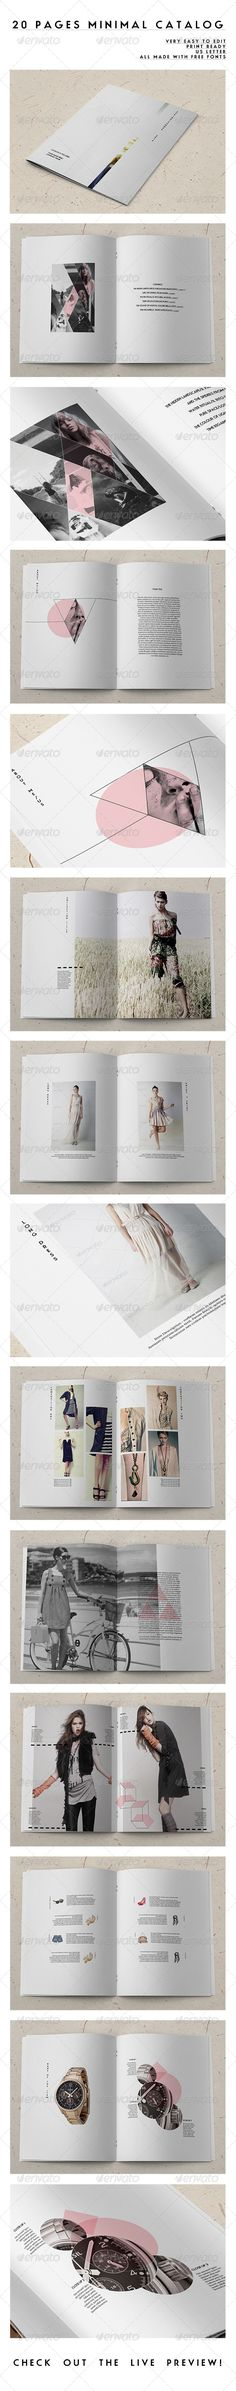 20 Pages Minimal Catalog - Catalogs Brochures | typography / graphic design @ envato |                                                                                                                                                                                 Más